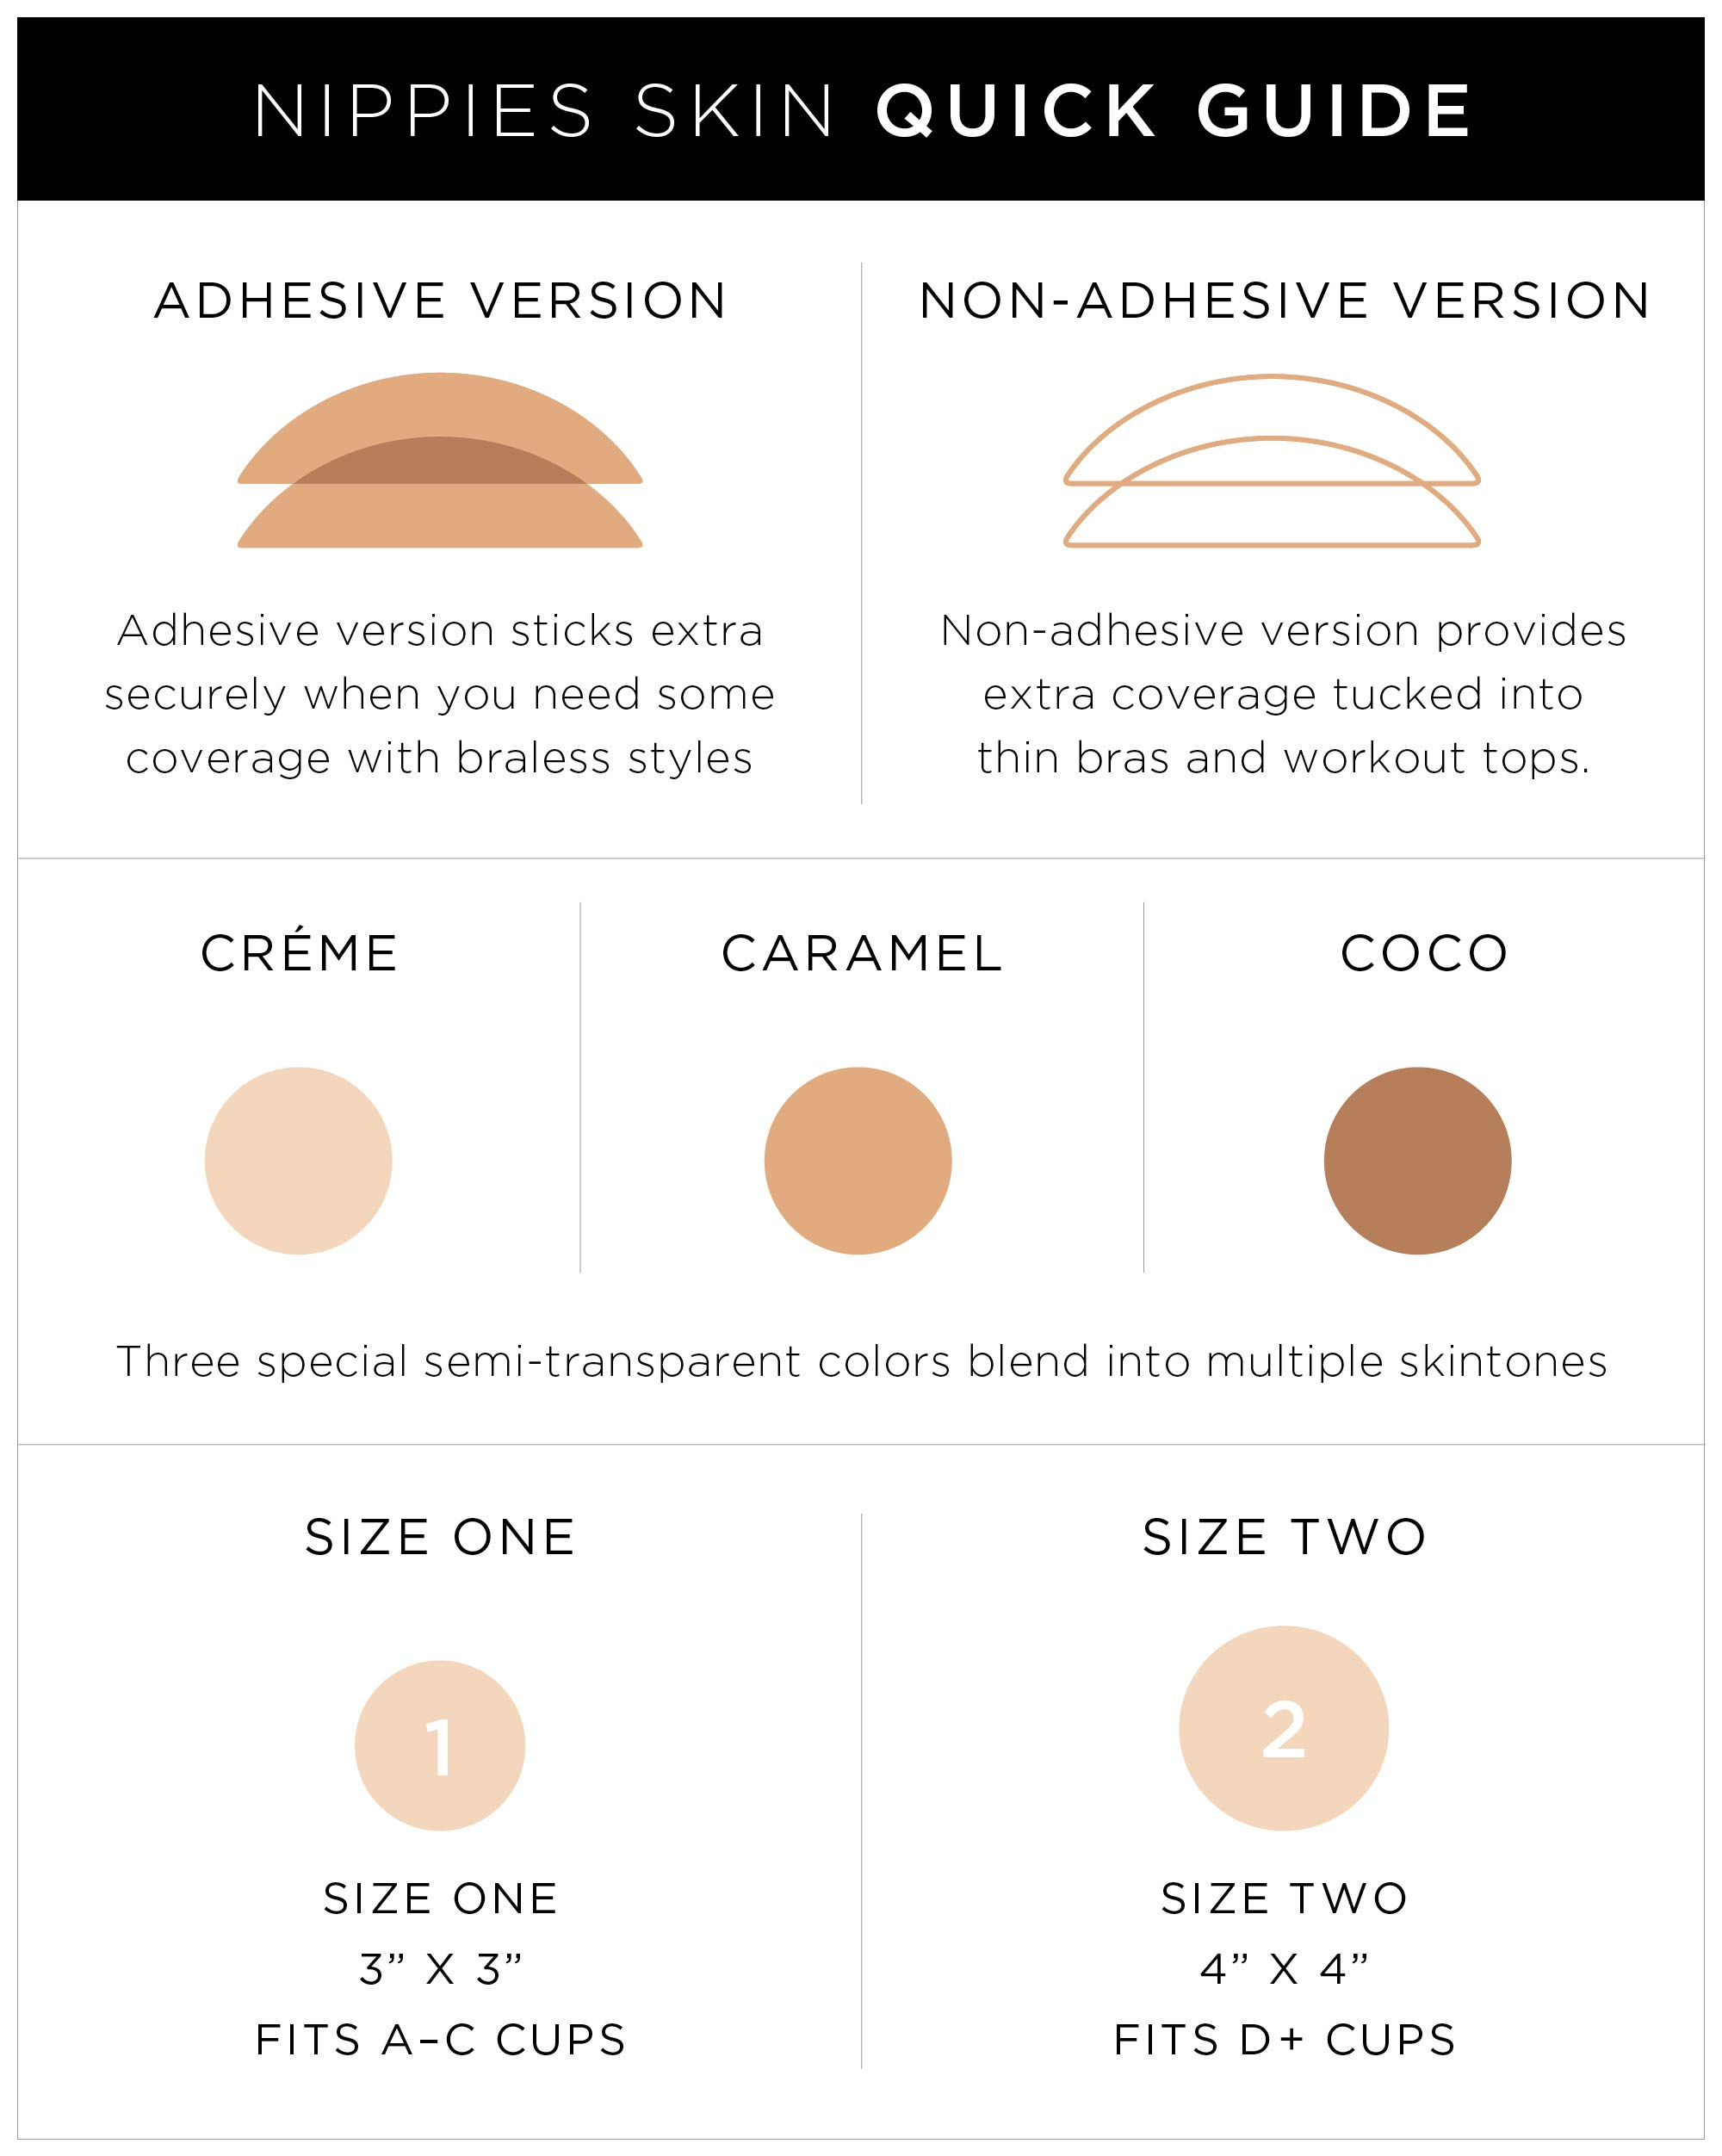 Nude Matte Self-Adhesive Hypoallergenic Silicone Nipple Cover Up Ultra Thin Edge Breast Petal Shield Round 1 Pair